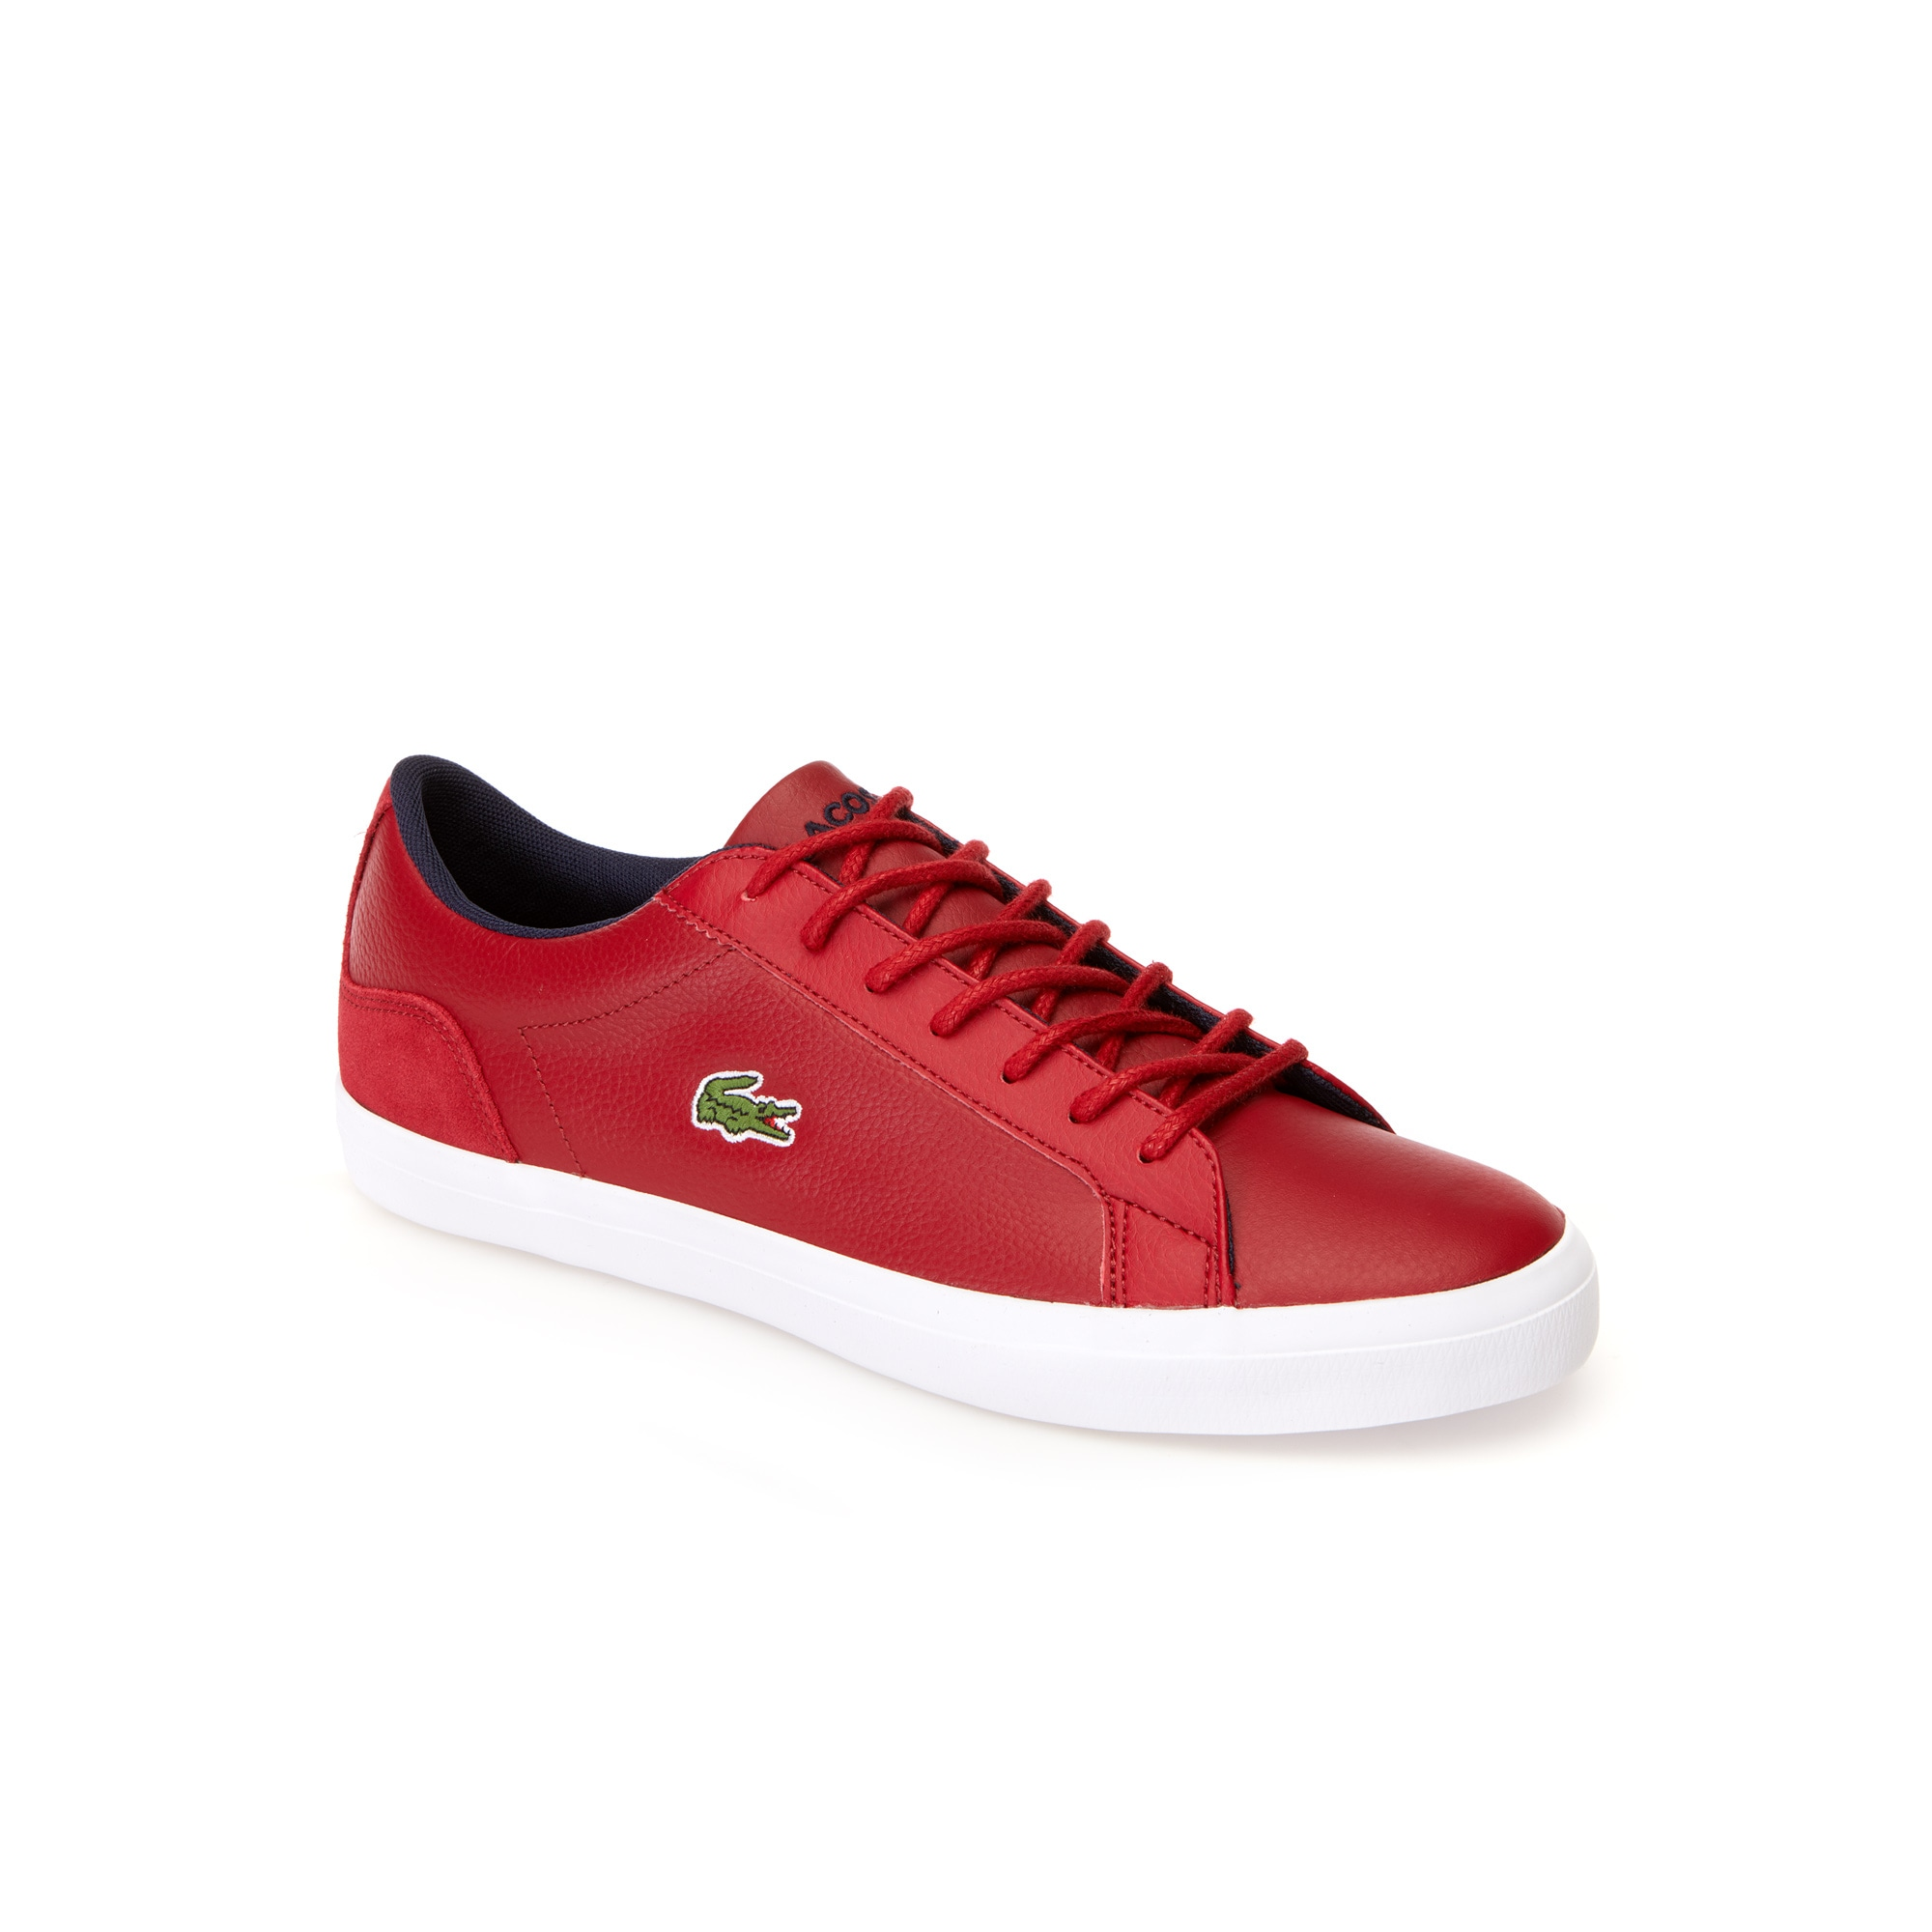 Men's Lerond Leather and Suede Trainers